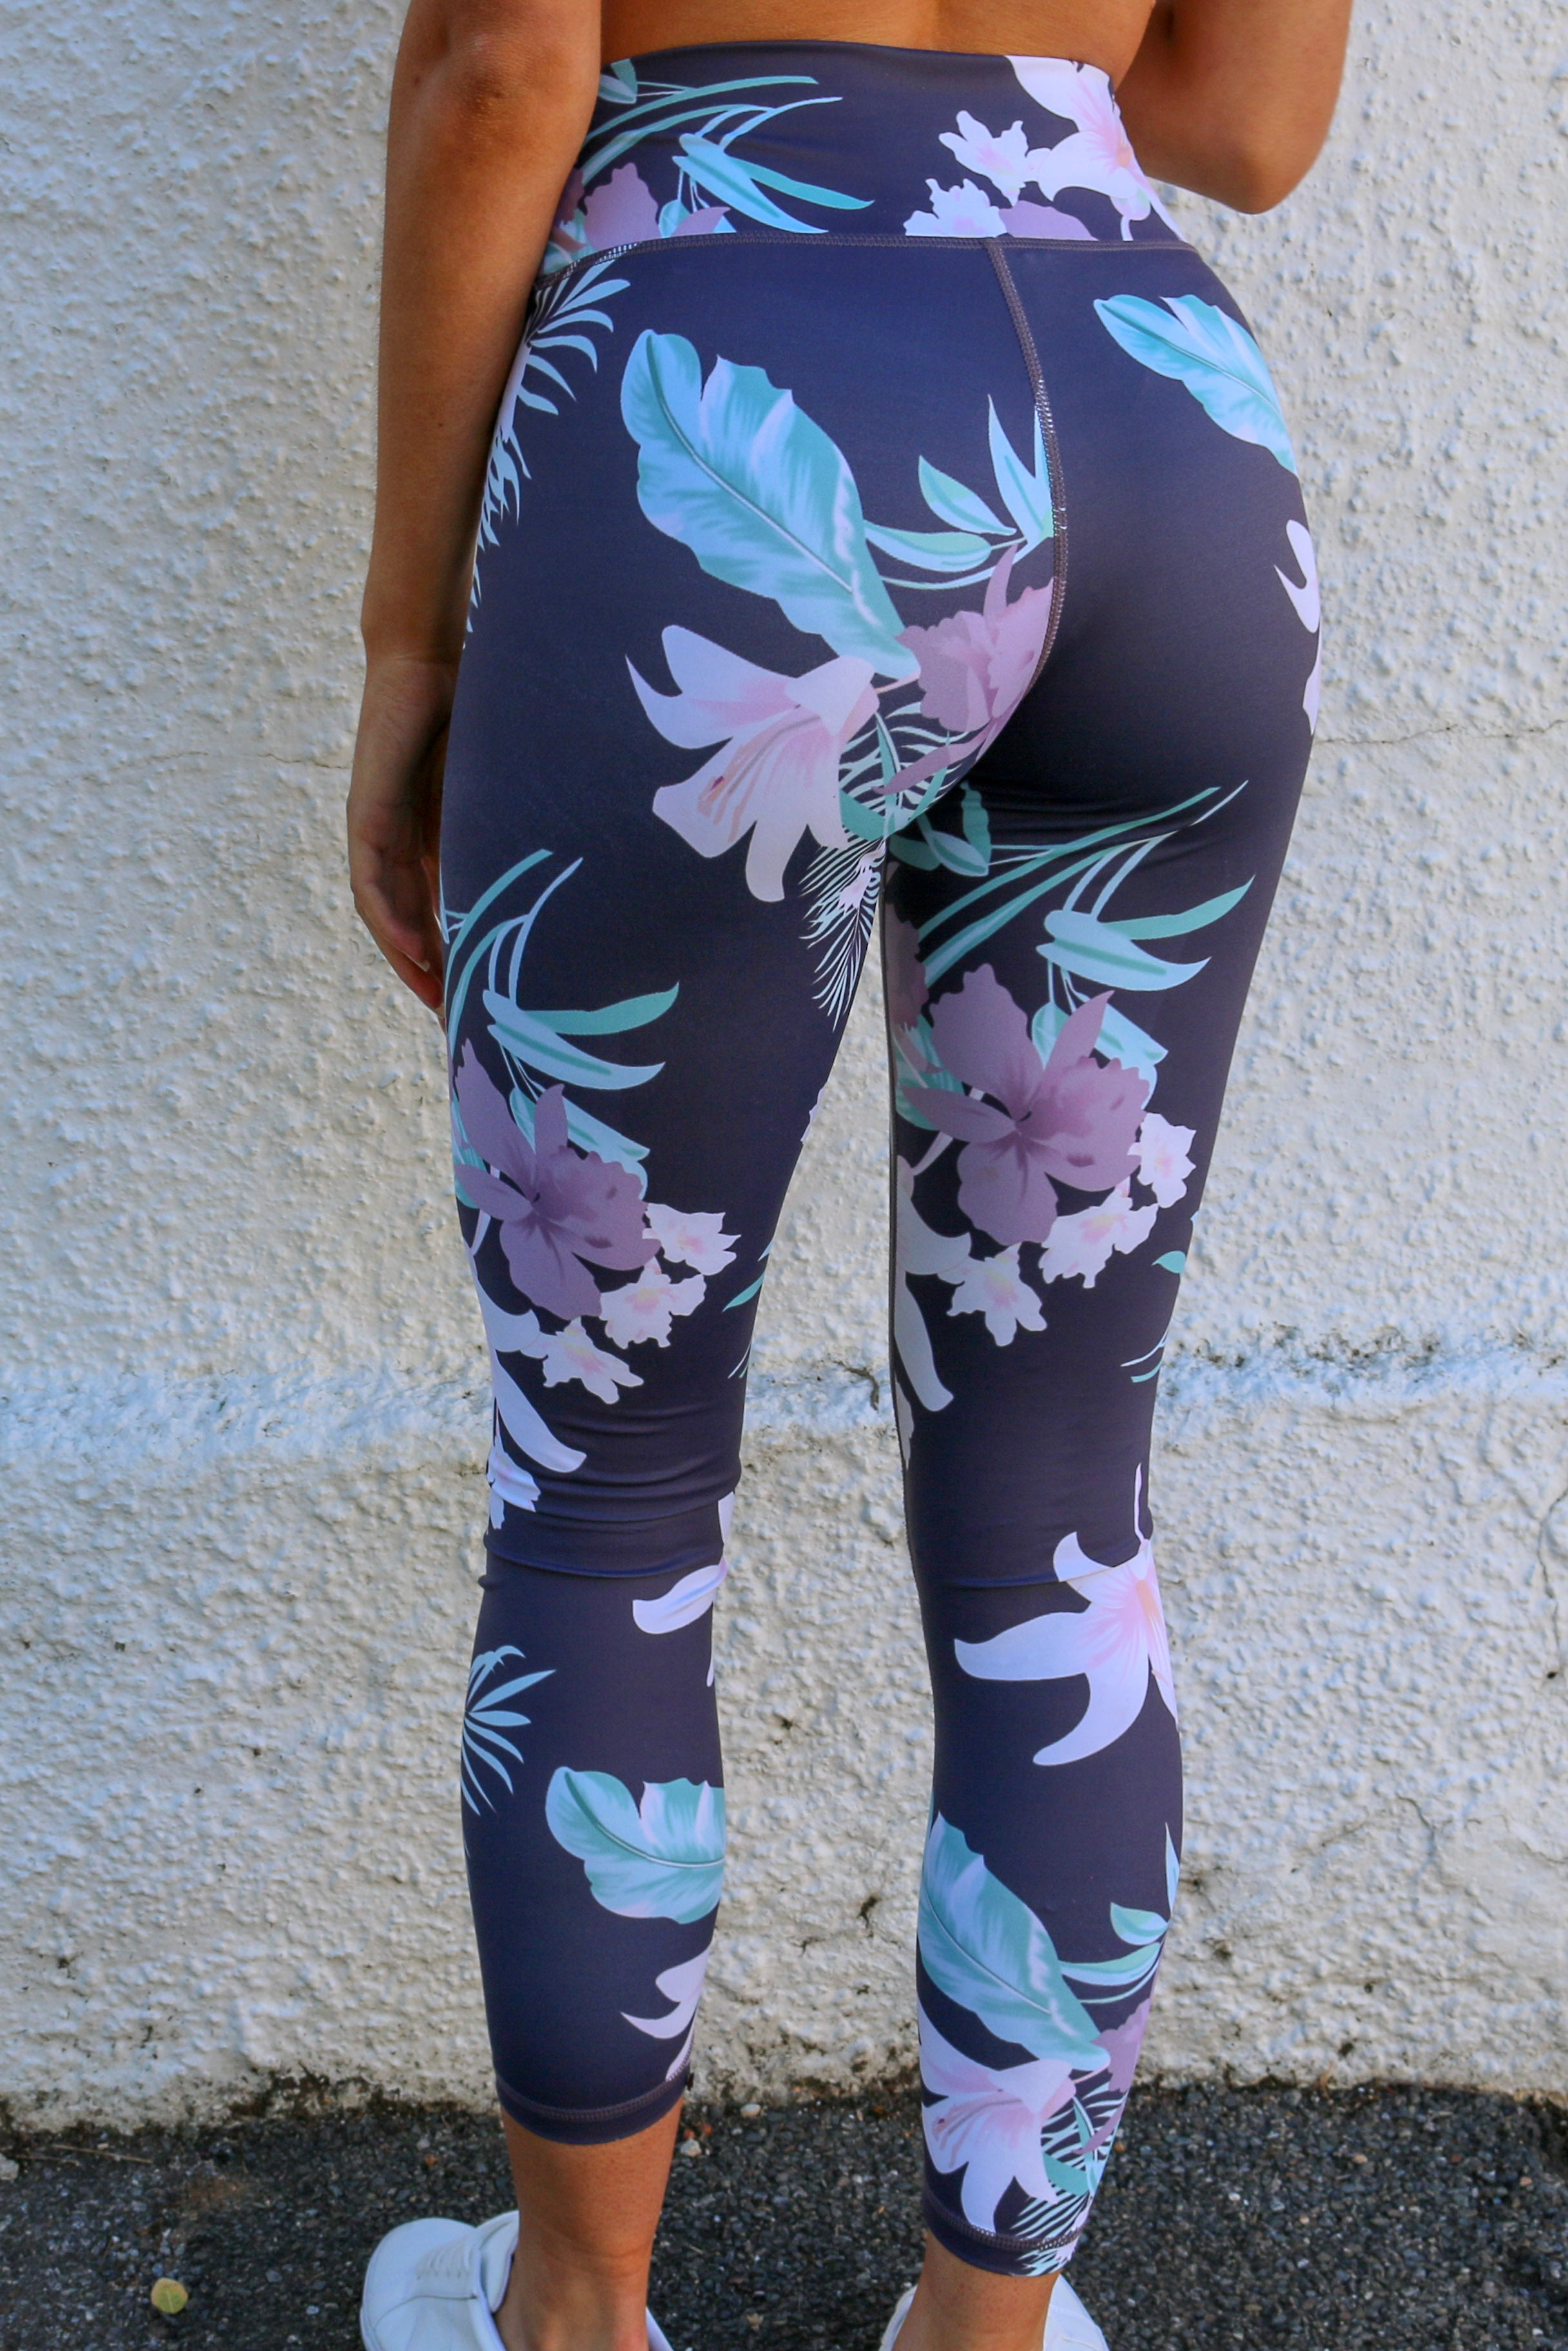 Women's floral printed workout leggings